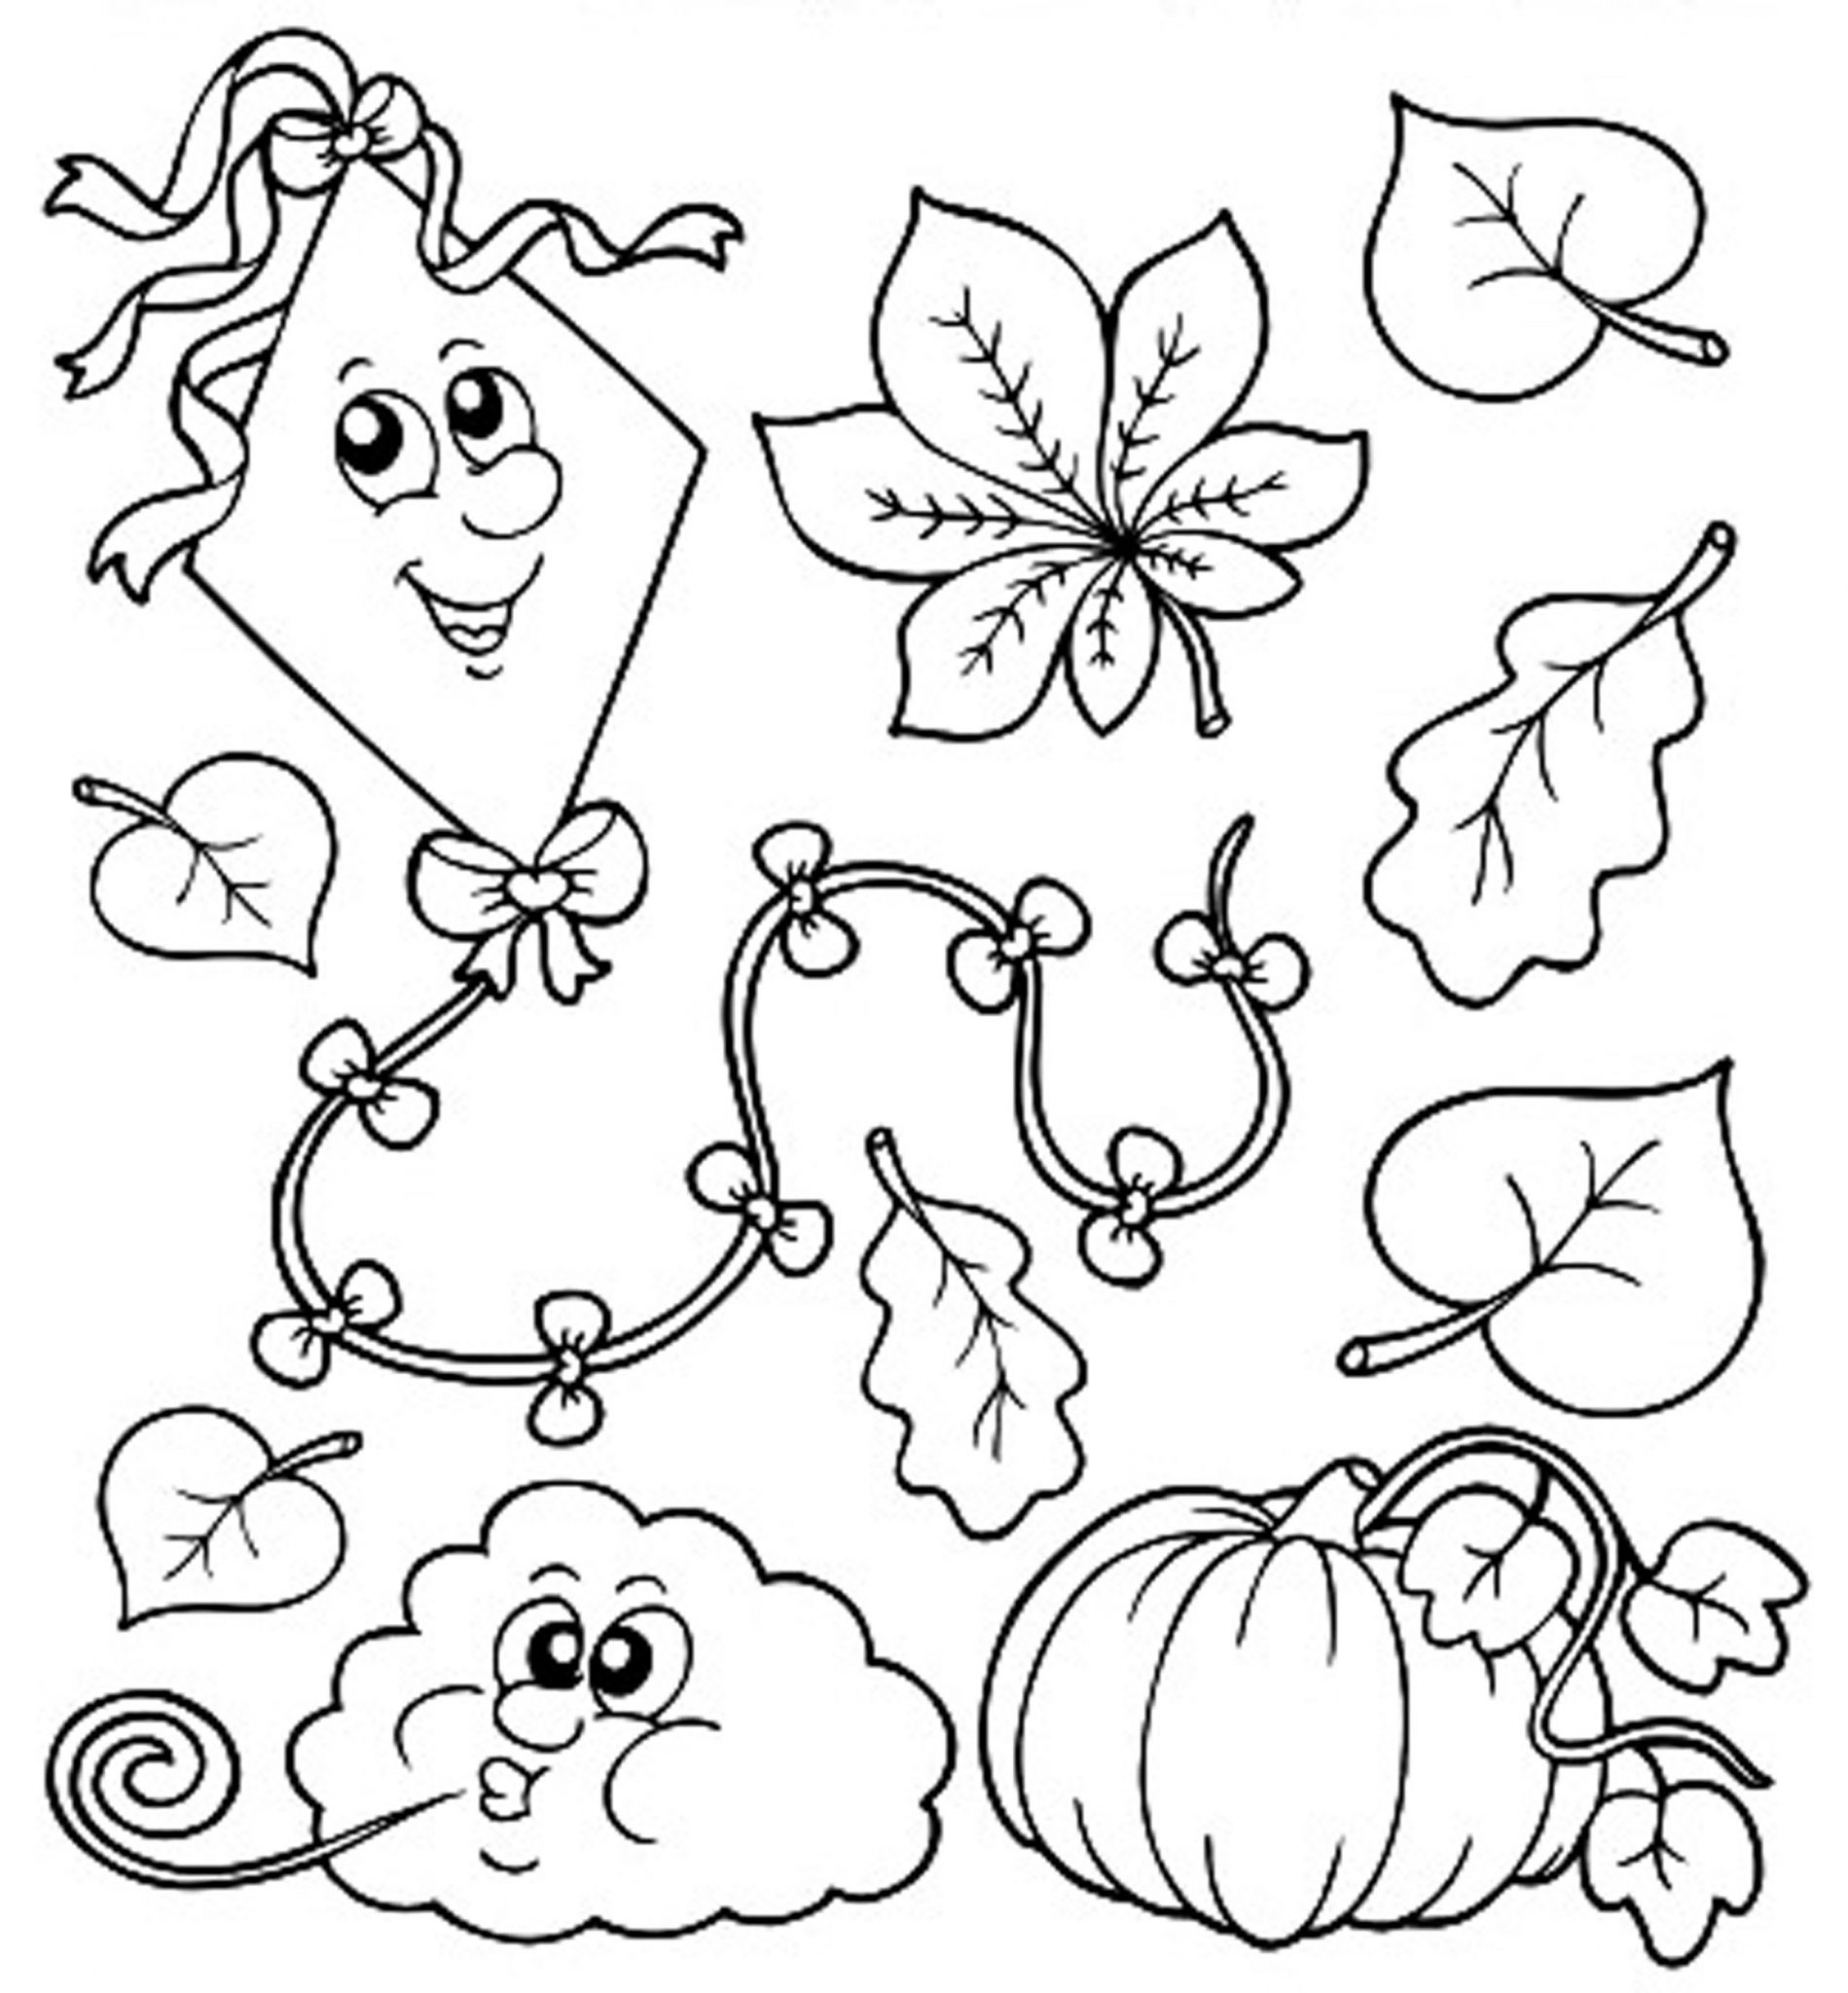 free fall printable coloring pages harvest coloring pages best coloring pages for kids pages fall free coloring printable